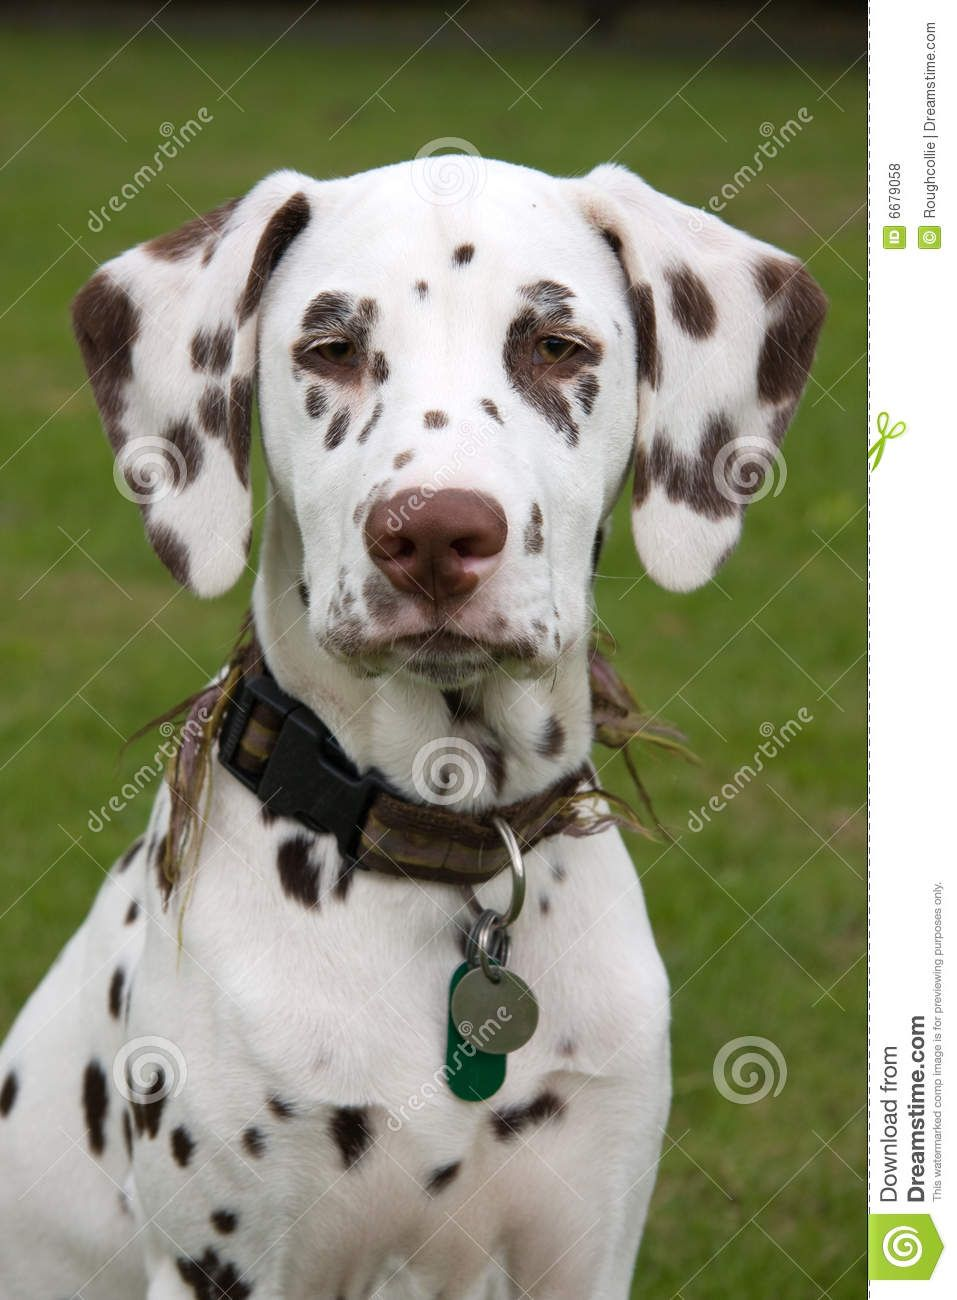 Dalmatian Dogs Dalmatian Puppy Royalty Free Stock Photos Image